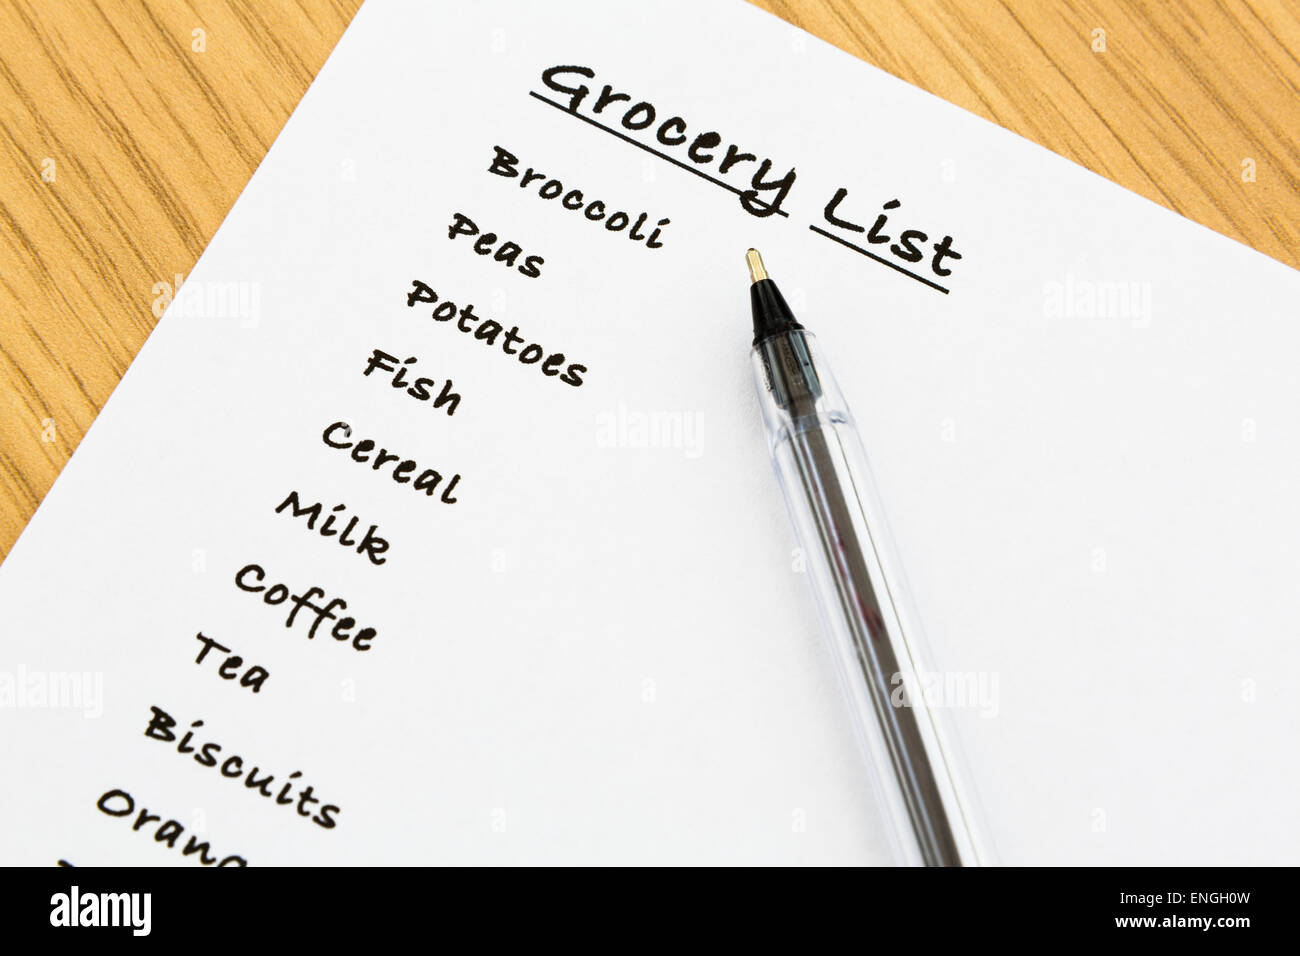 Top down of a shopping list for groceries to buy written on a white piece of note paper with a black ballpoint pen. - Stock Image